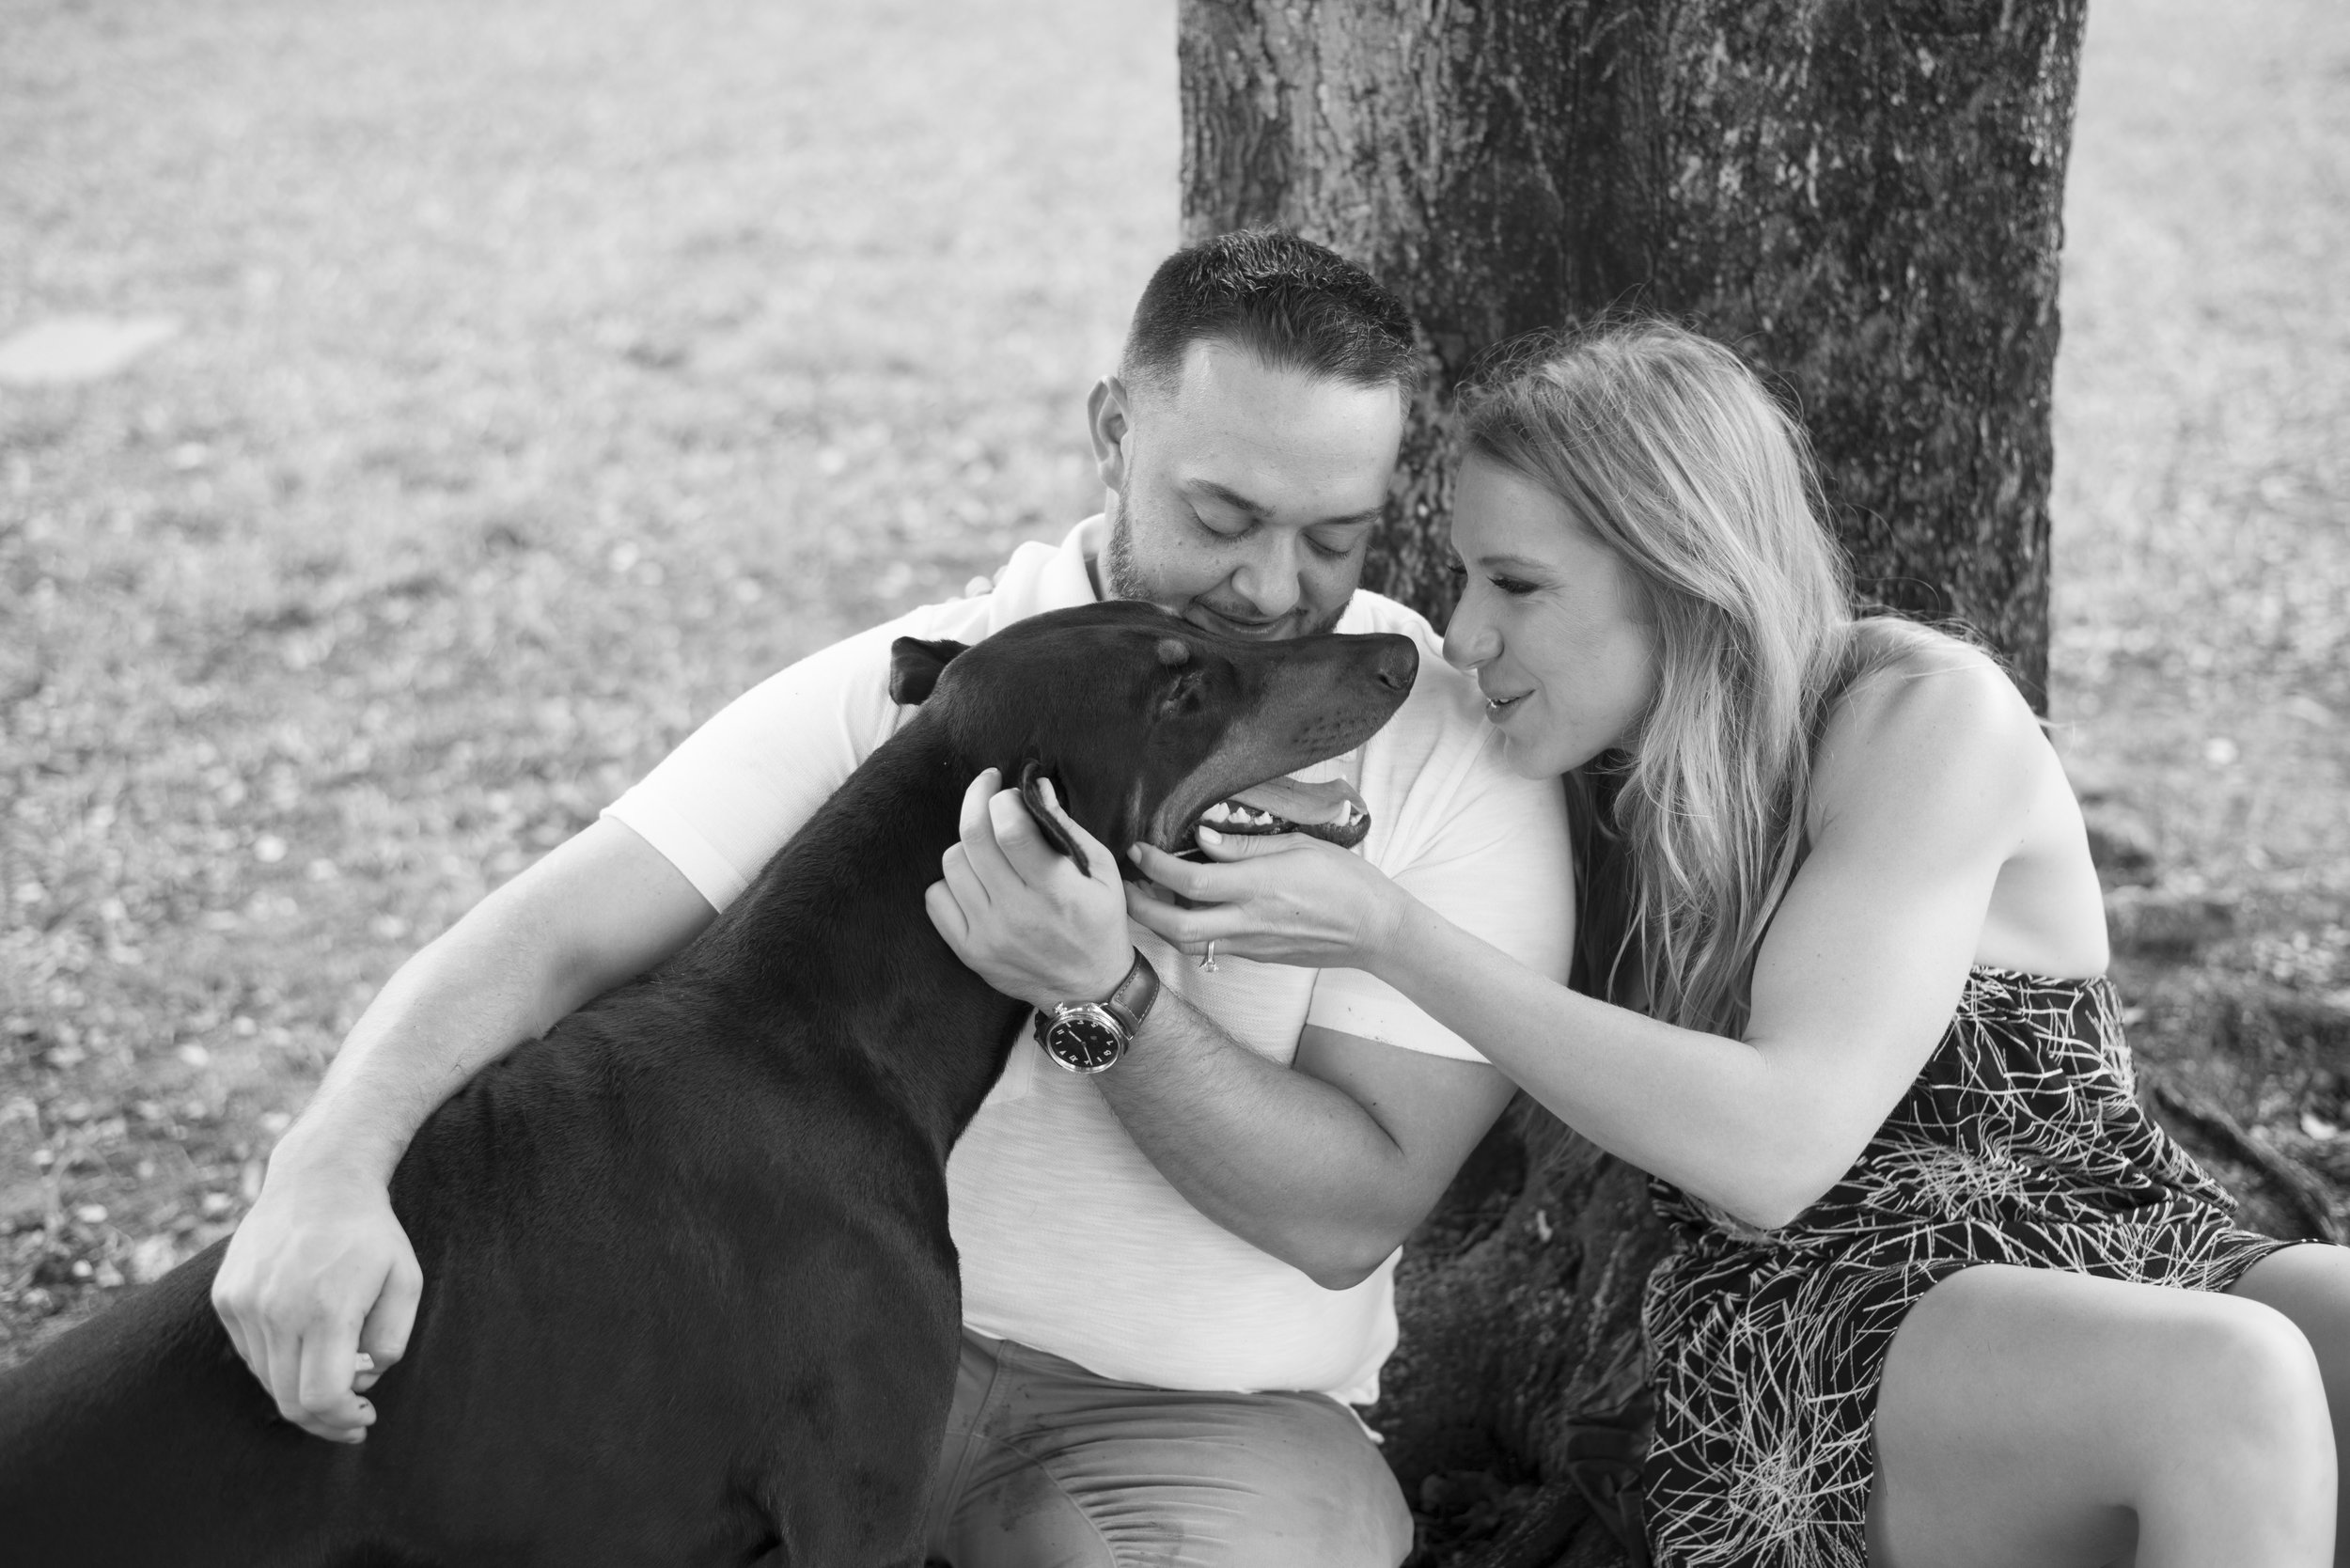 Couple with their dog in engagement photos.Engagement photos in Florida. Las Vegas Wedding Planner Andrea Eppolito. Image by AltF Photography.